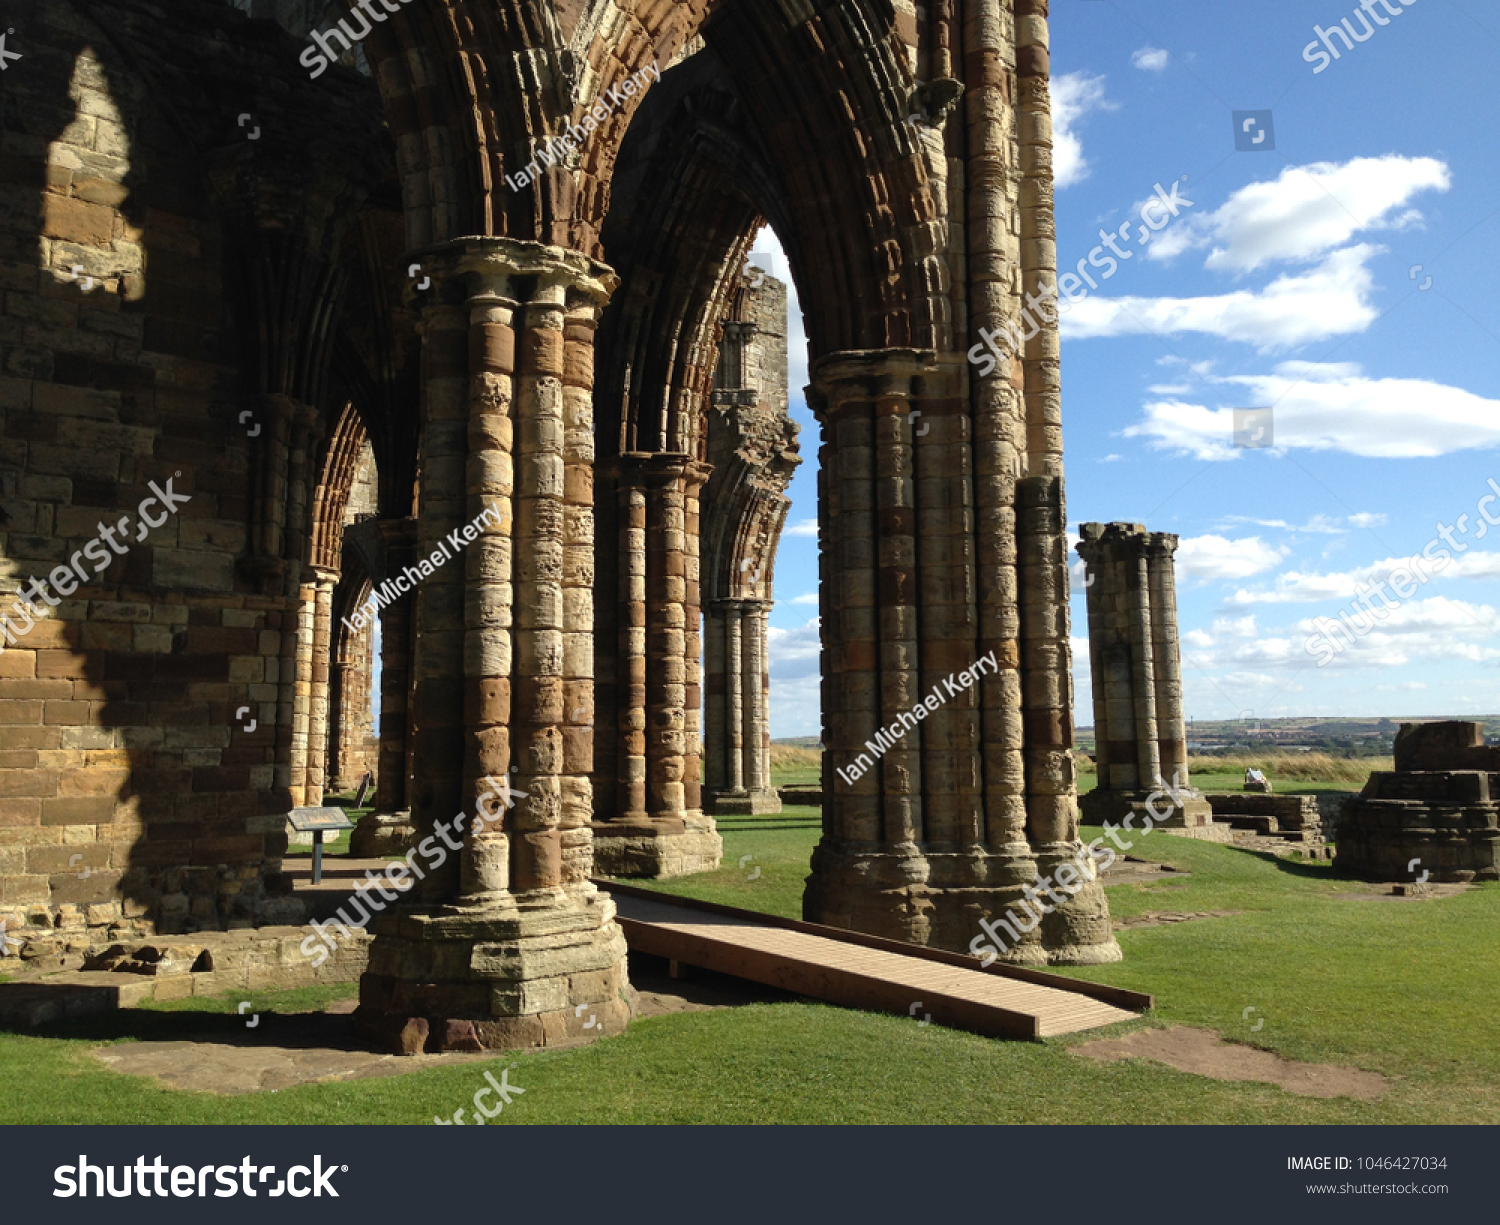 Pillars supporting the remains of an abandoned church in England, Europe.  Blue sky with